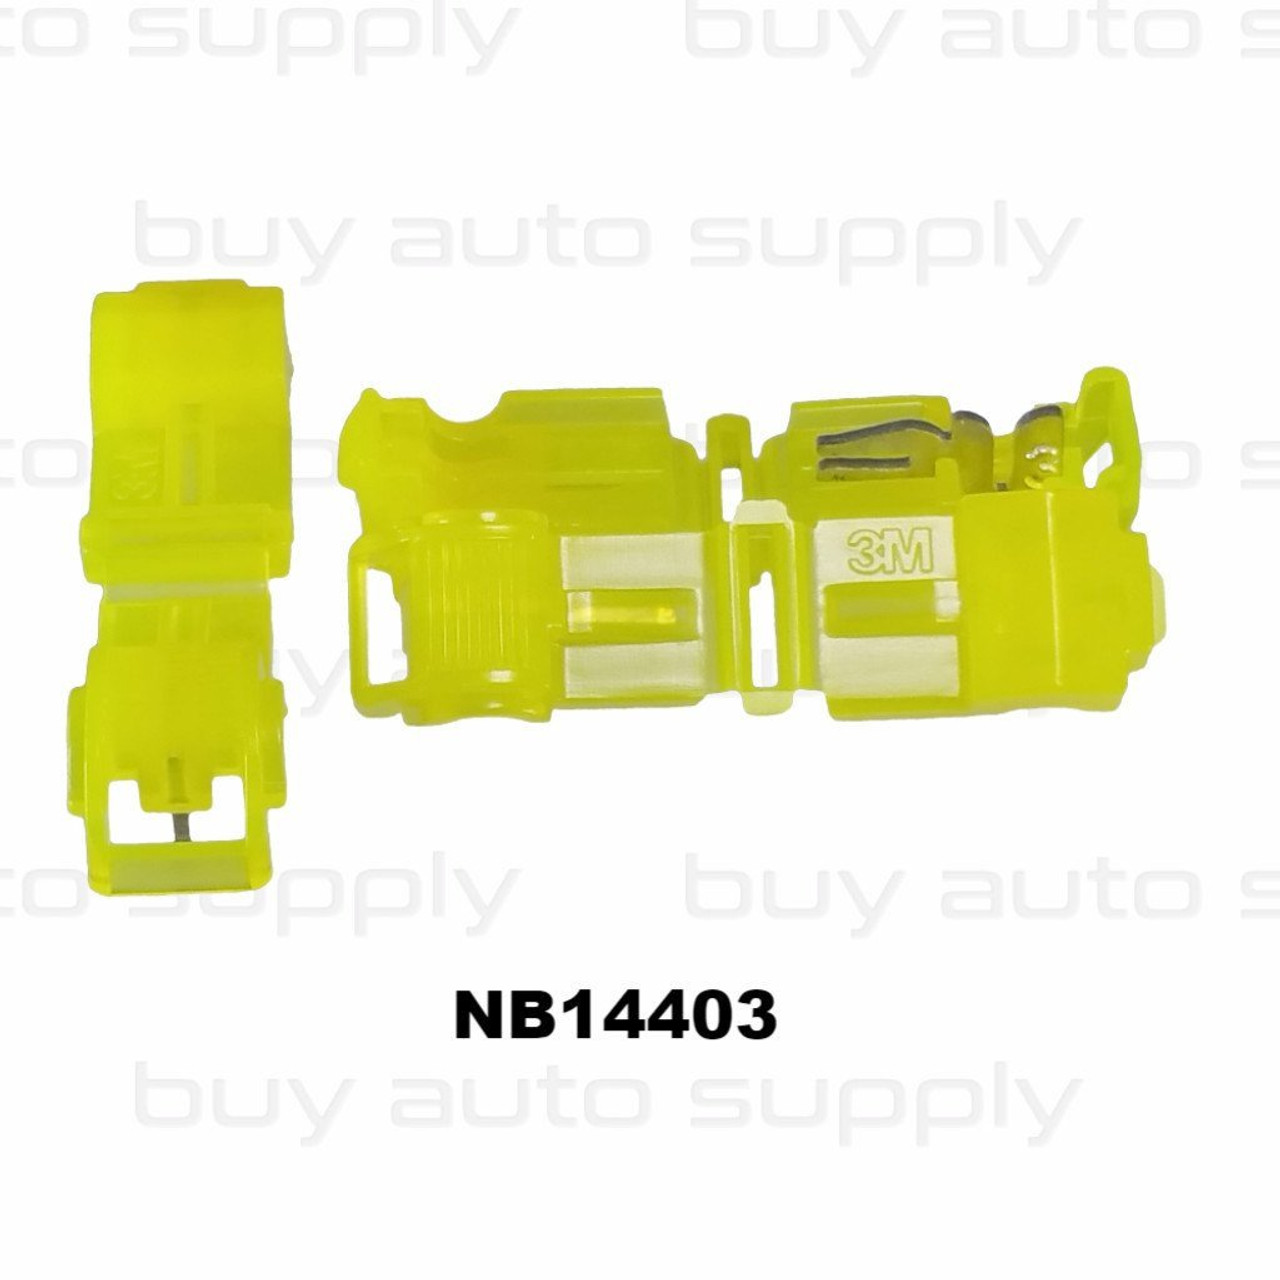 3M Wire Tap | Nb14403 3m Yellow T Tap 953k 12 10 Awg